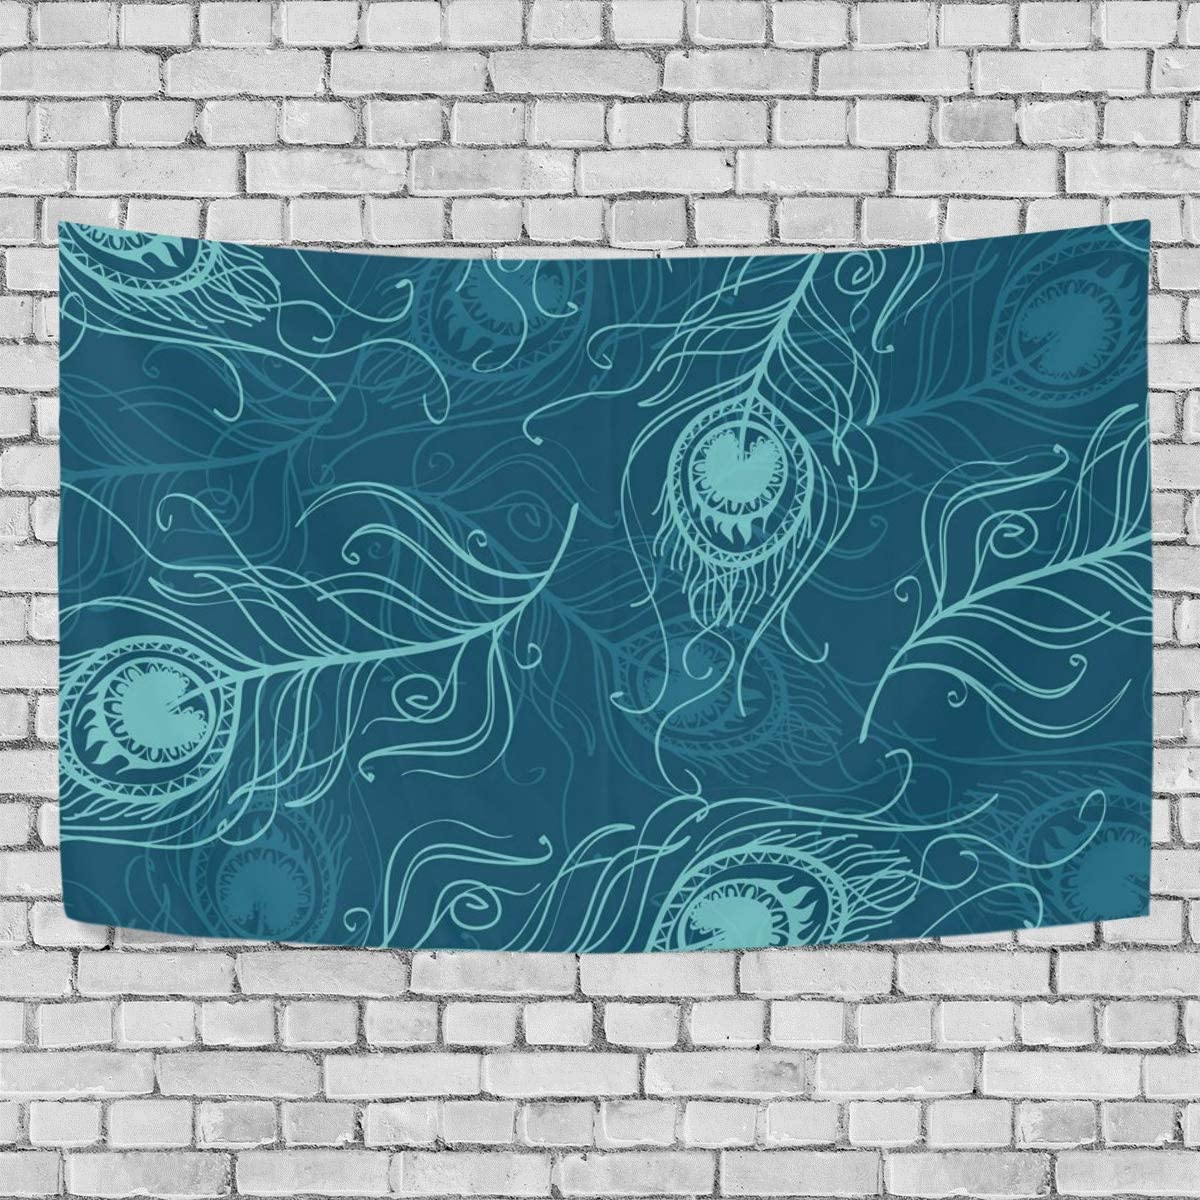 Abstract Art Colorful Peacock Feathers Wall Hanging Tapestry 60x51 IN Home Decor